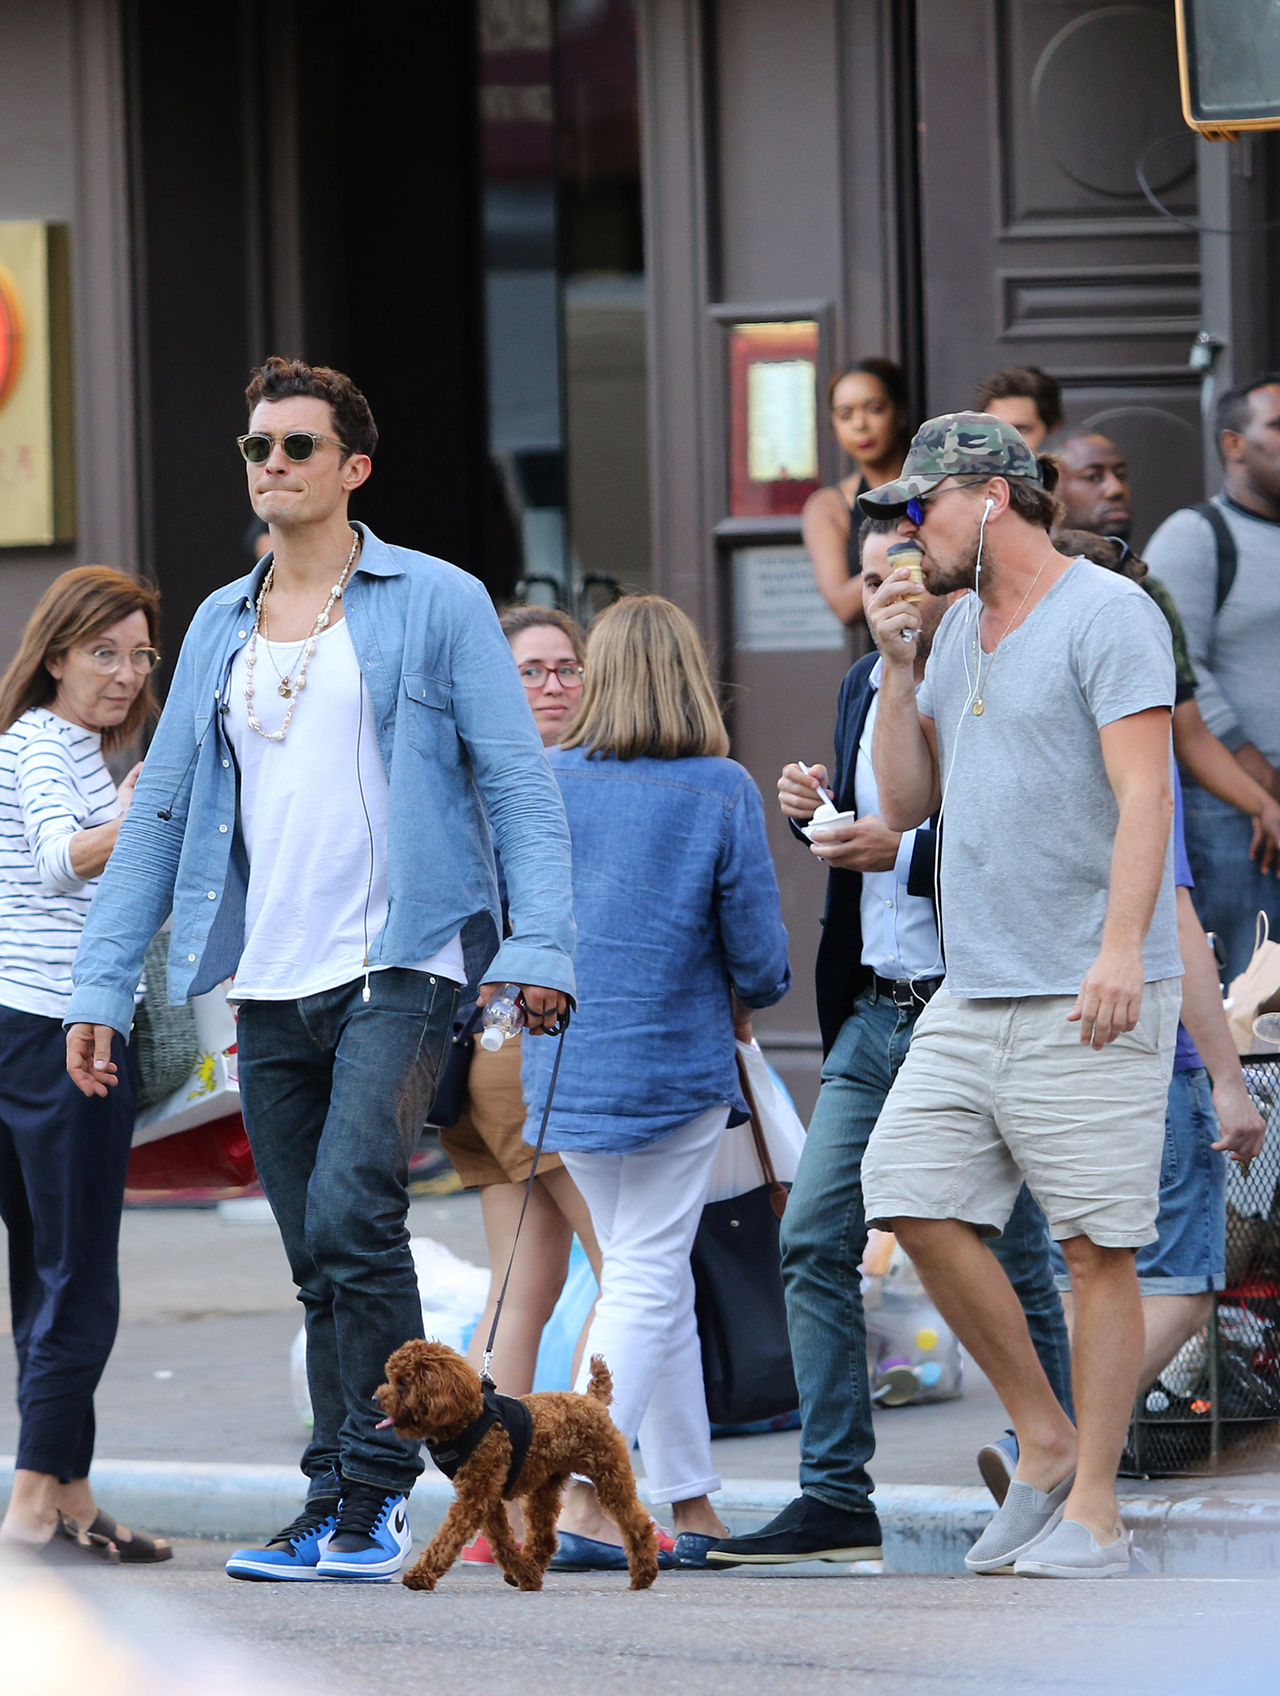 Leonardo DiCaprio, Tobey Maguire and Orlando Bloom meet up and hang out as they went for a long walk with friends after having a late afternoon lunch and stopping for ice cream in Manhattan's East Village Neighborhood. 14 Jun 2017 Pictured: Leonardo DiCaprio and Orlando Bloom. Photo credit: LRNYC / MEGA TheMegaAgency.com +1 888 505 6342 (Mega Agency TagID: MEGA42466_016.jpg) [Photo via Mega Agency]